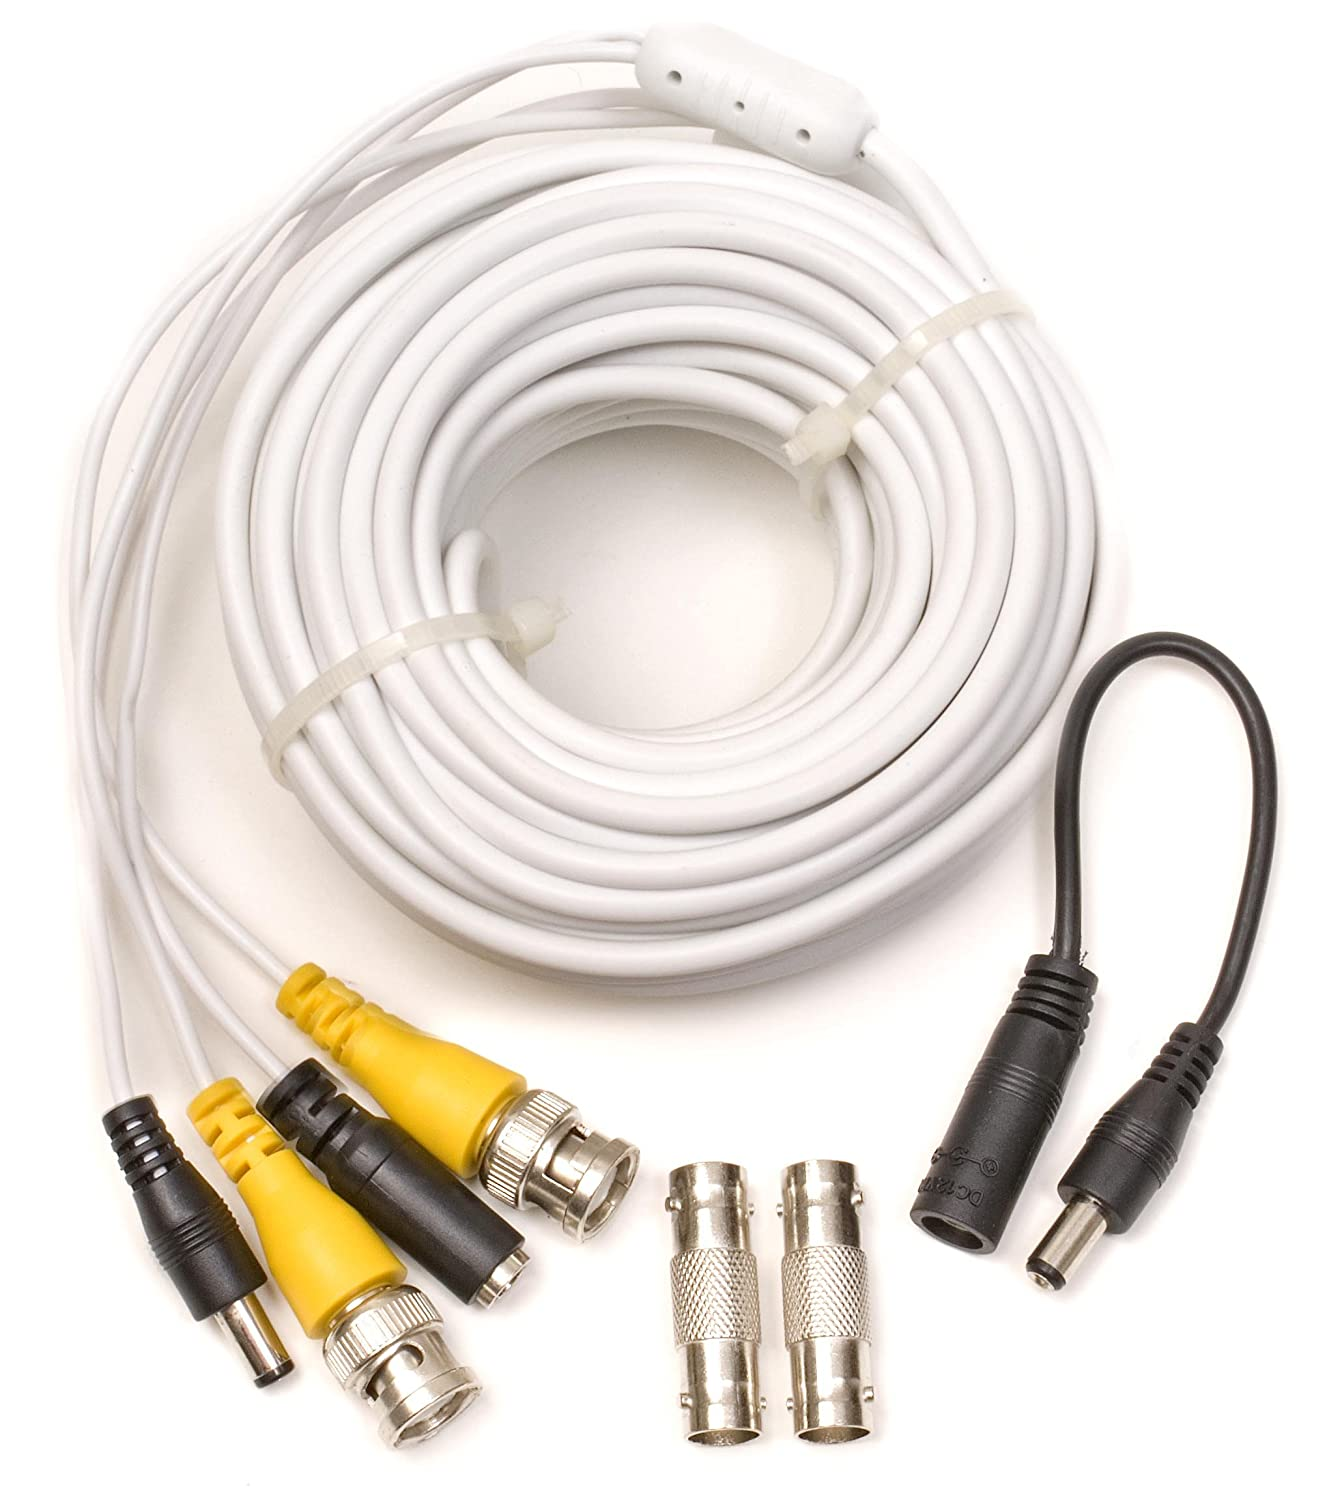 Amazon.com : Q-See 50FT BNC Video & Power Cable with 2 Female ...